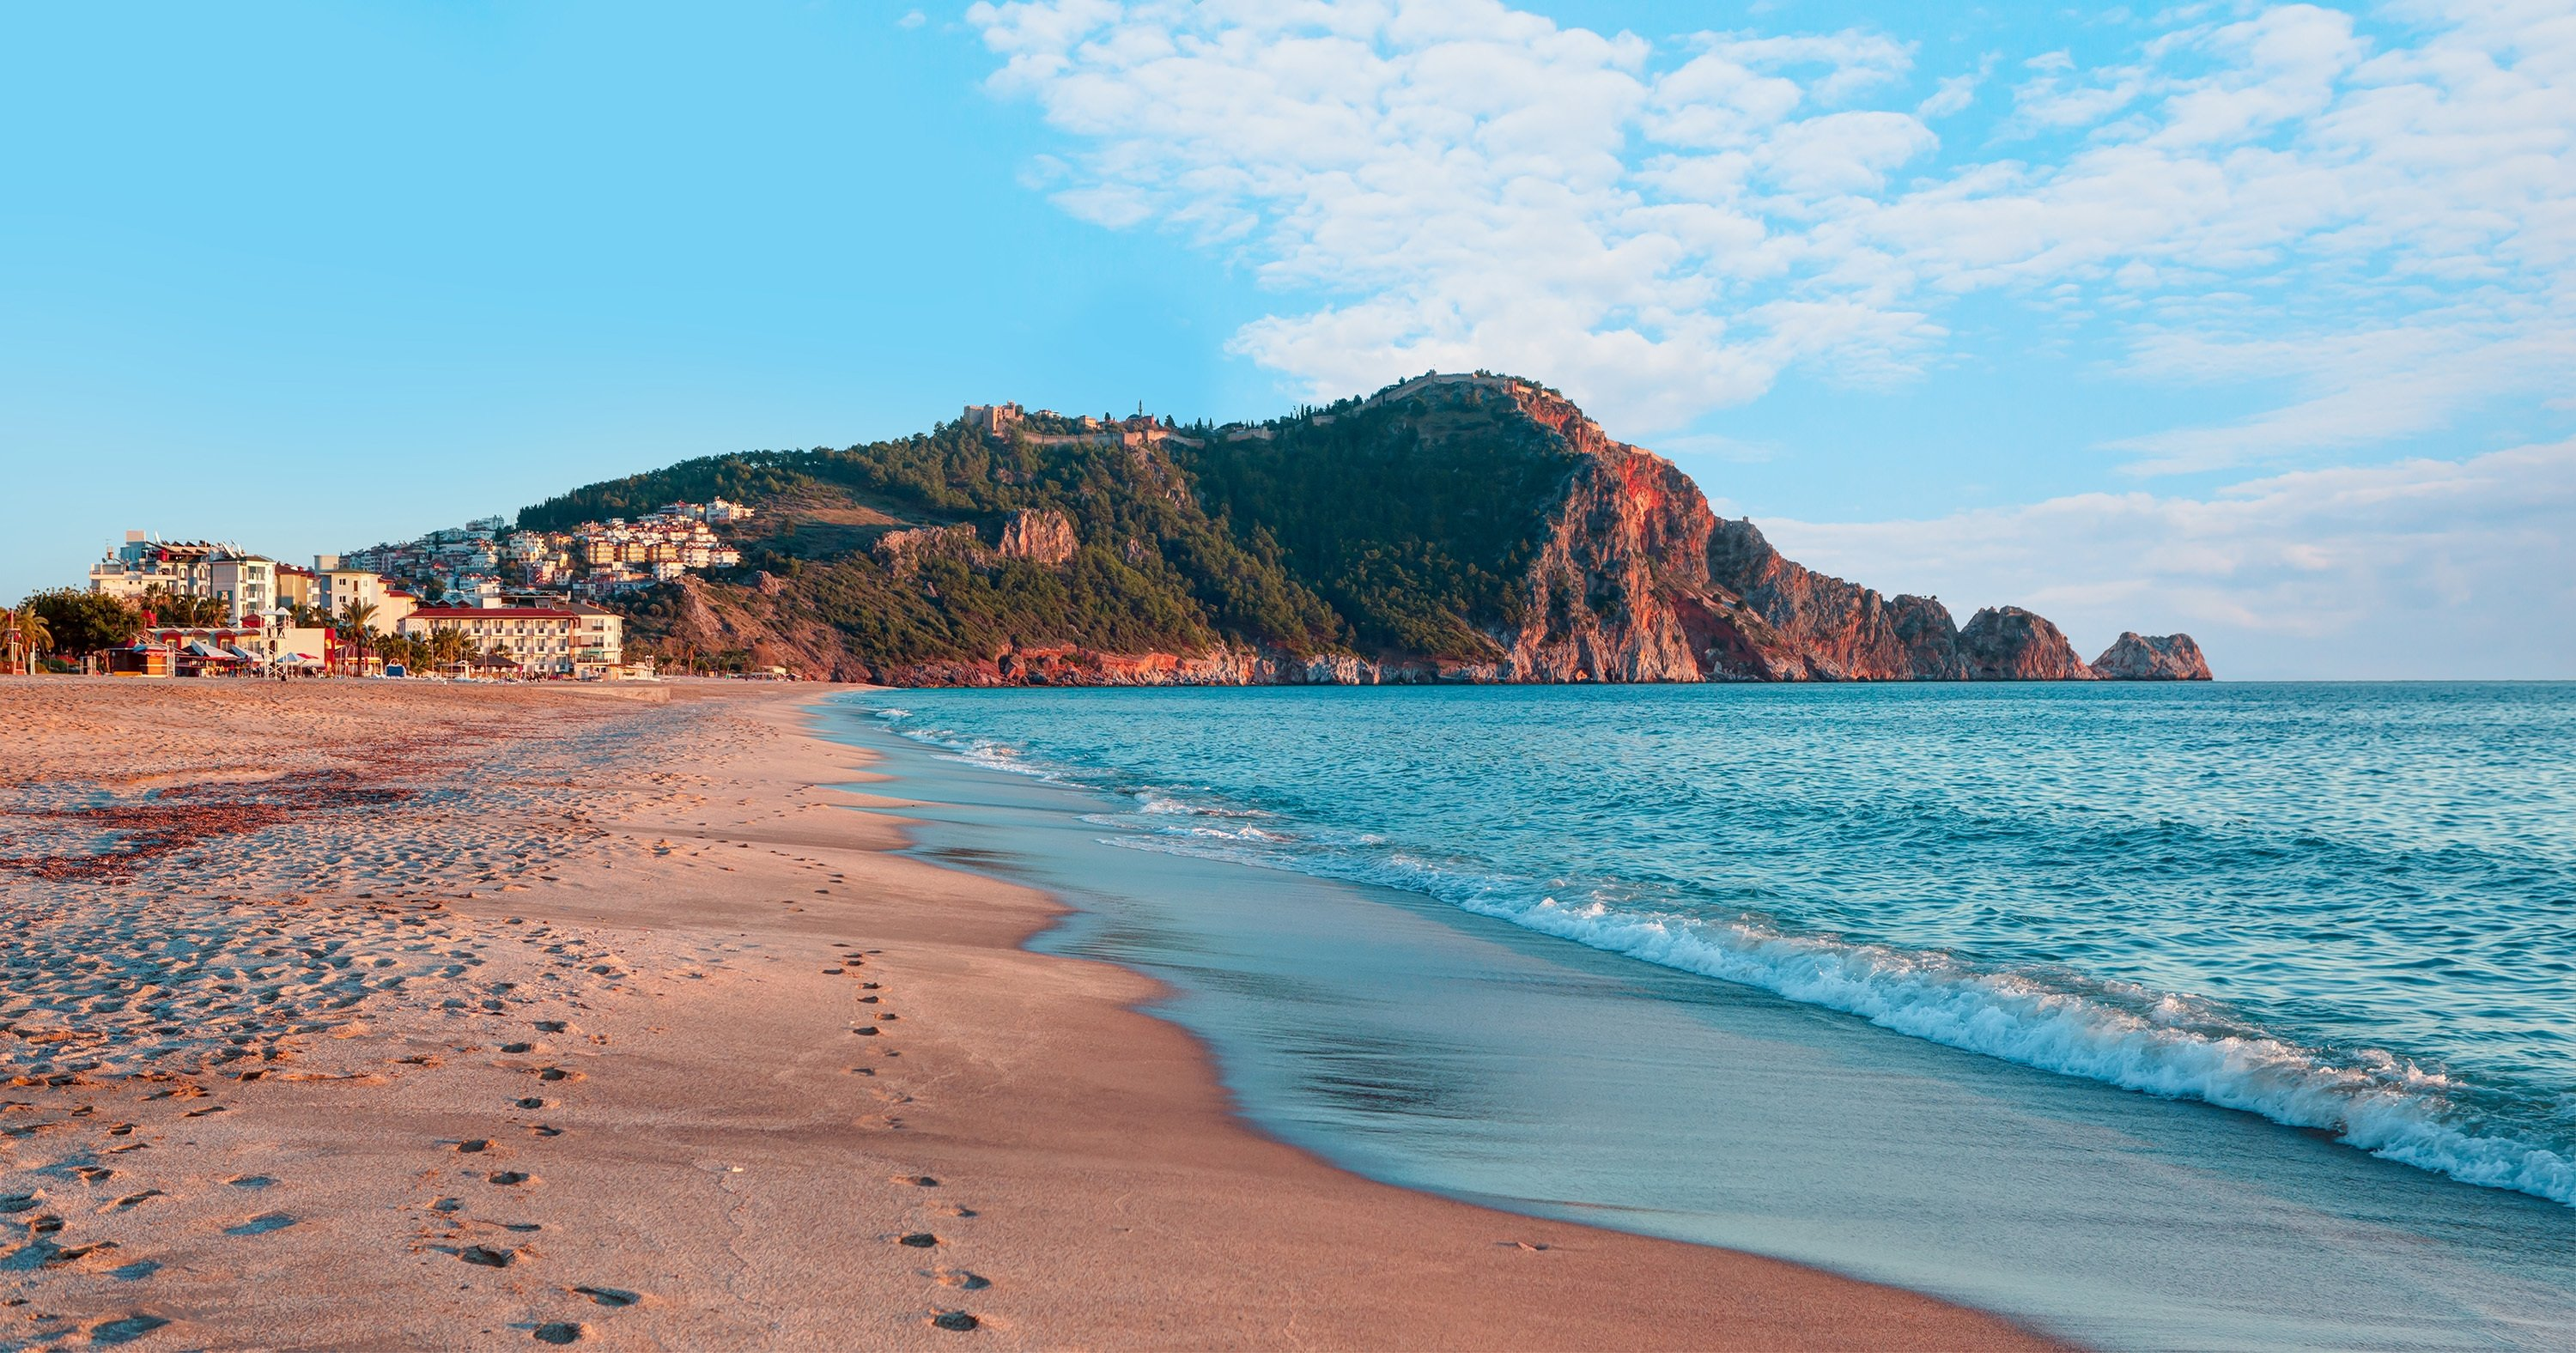 The golden sands of Cleopatra Beach are unique in that it doesn't stick to the skin of sunbathers. (Shutterstock Photo)